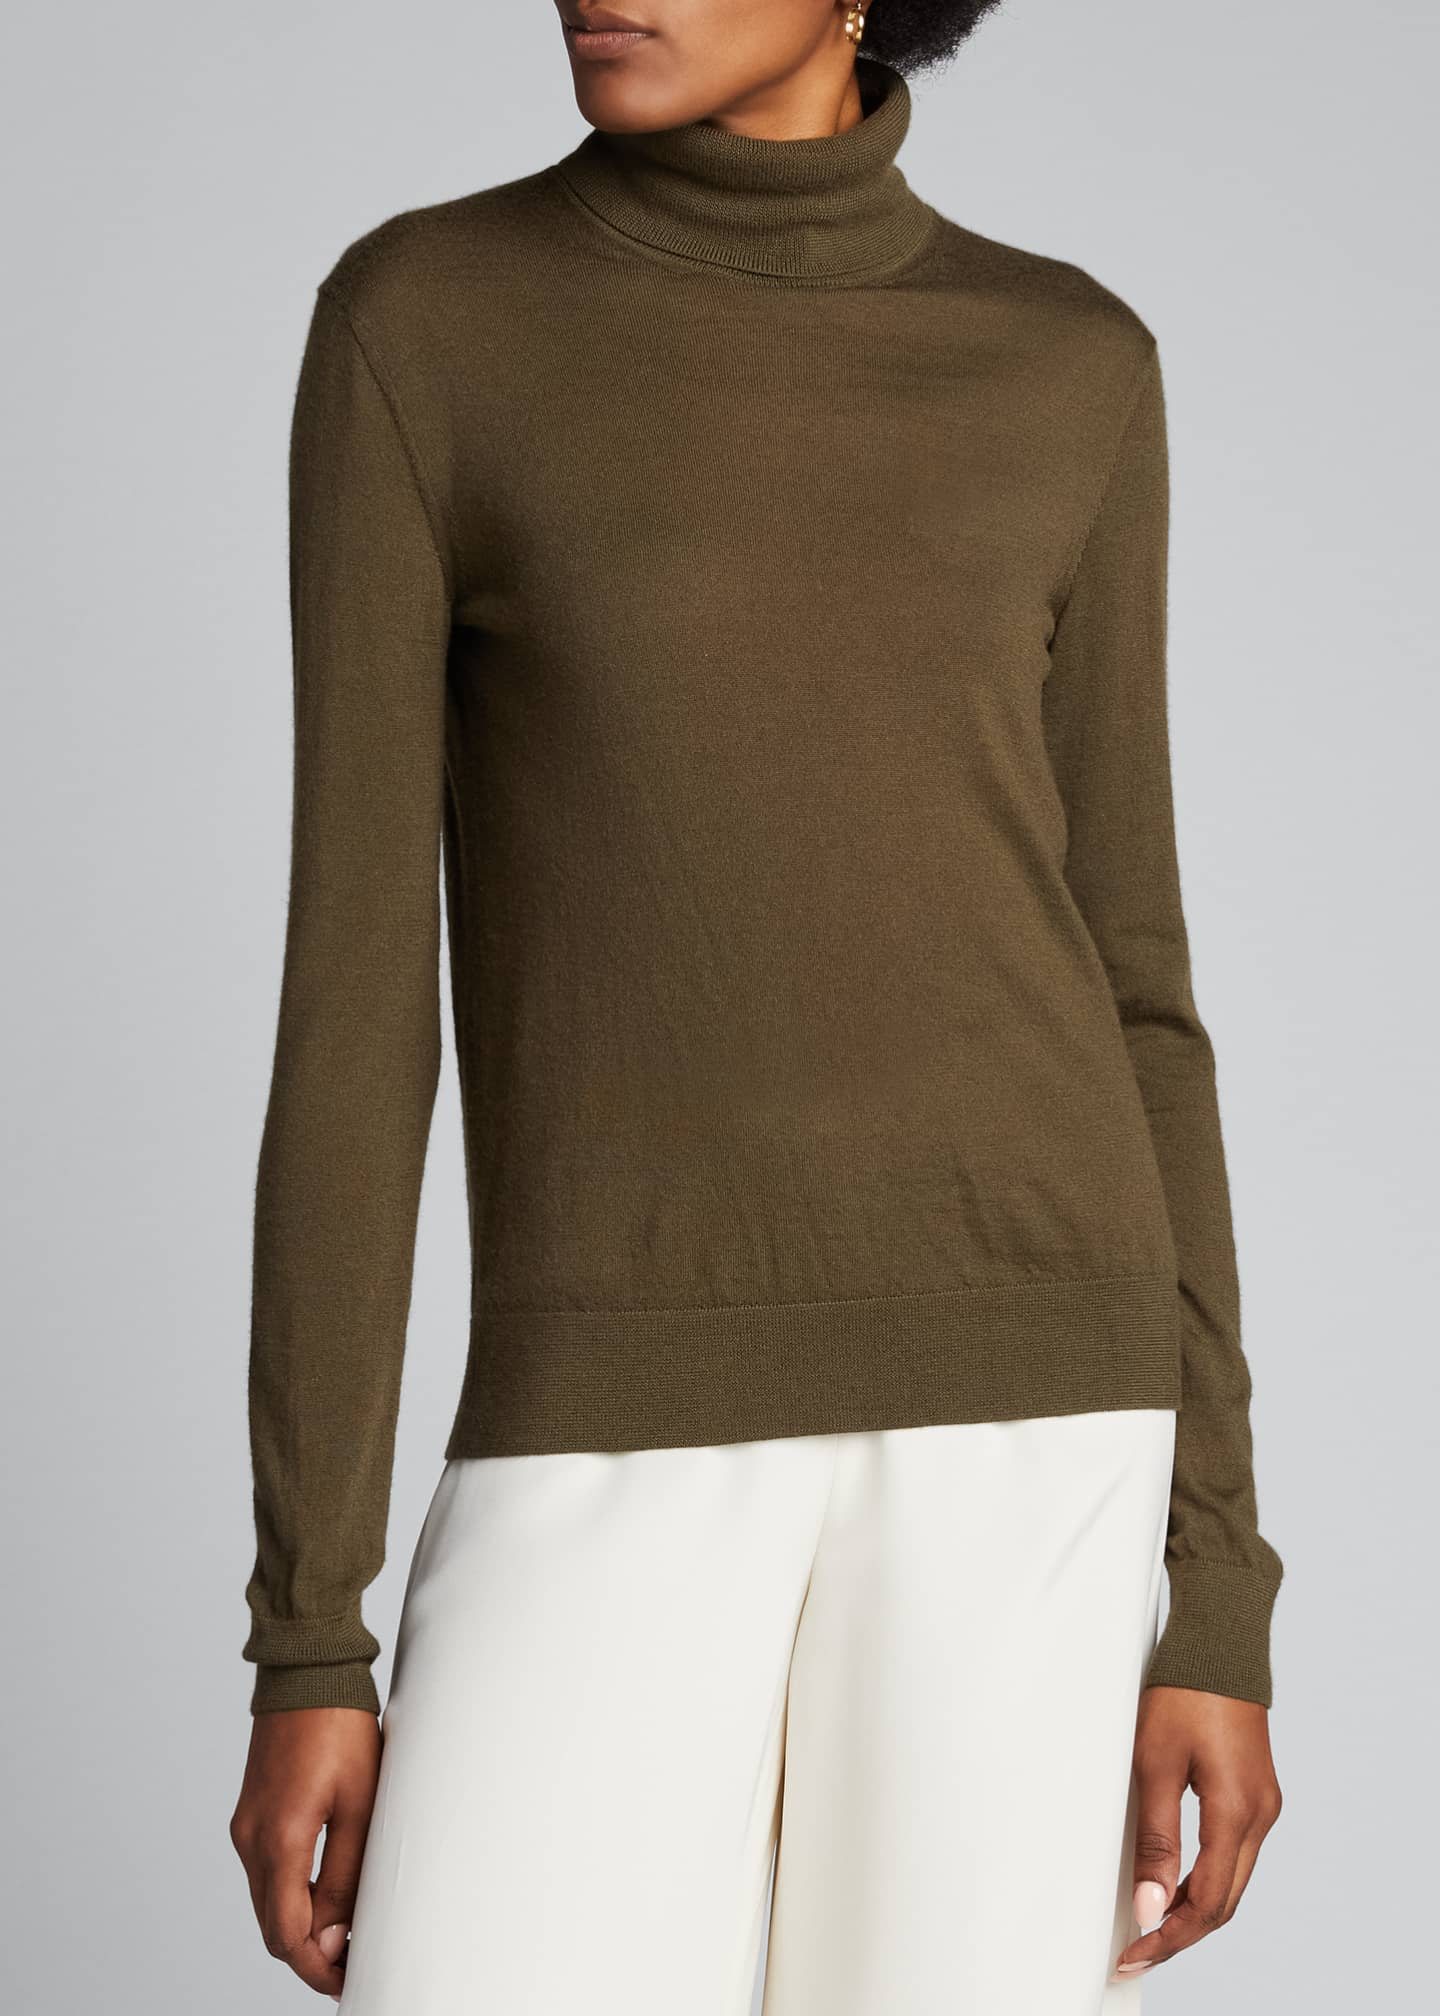 Image 3 of 5: Cashmere Fitted Turtleneck Sweater